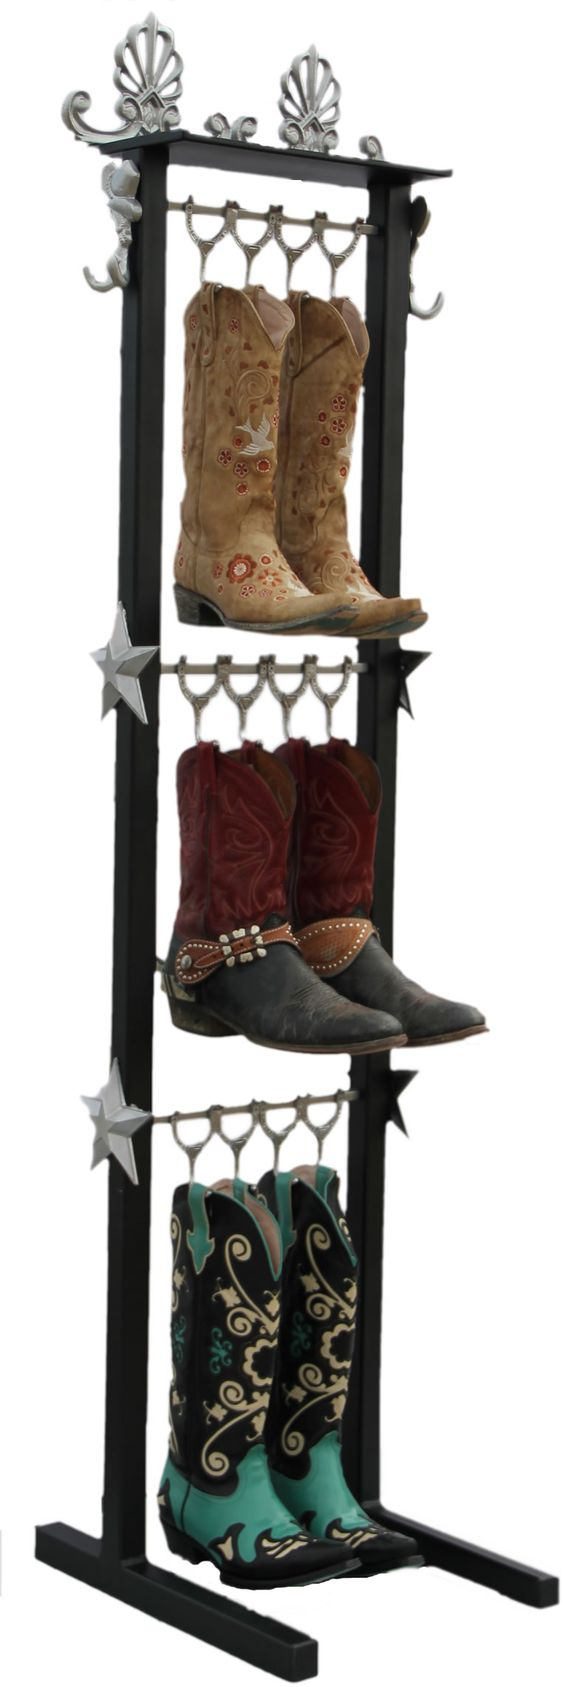 Beautifully Crafted Western Style Boot Racks Organize And